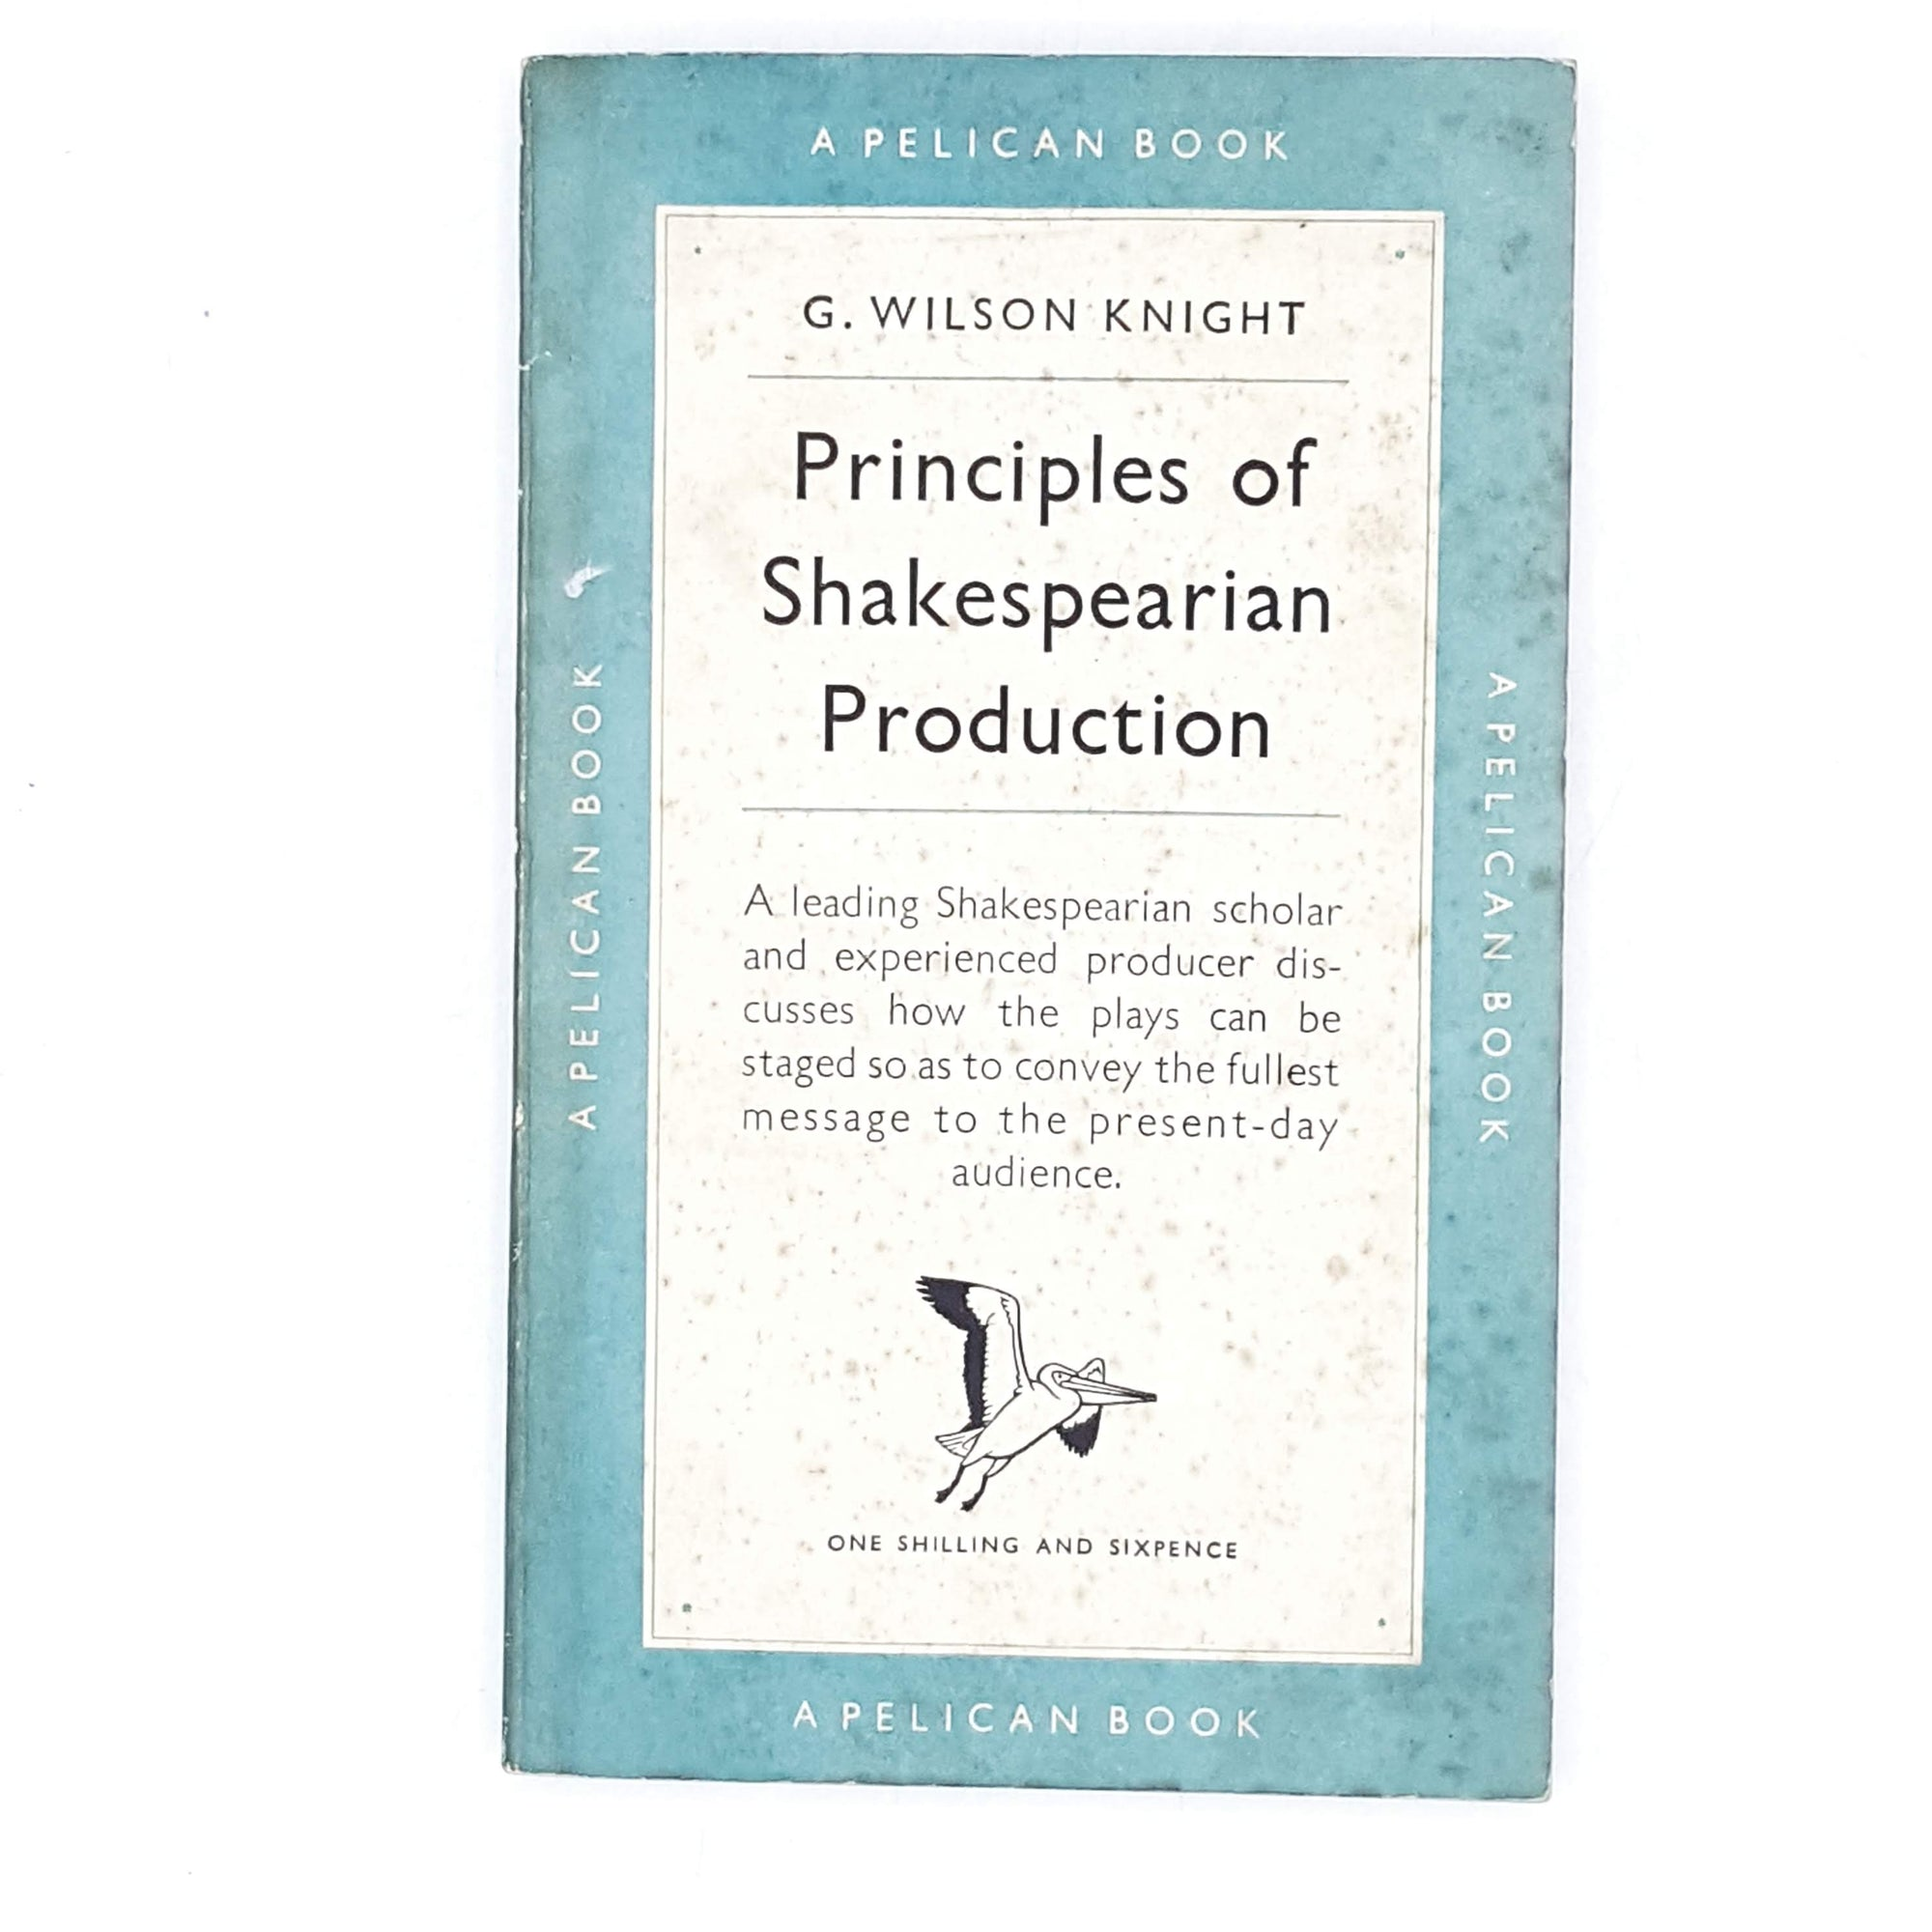 Vintage Pelican Principles of Shakespearian Production by G. Wilson Knight 1949